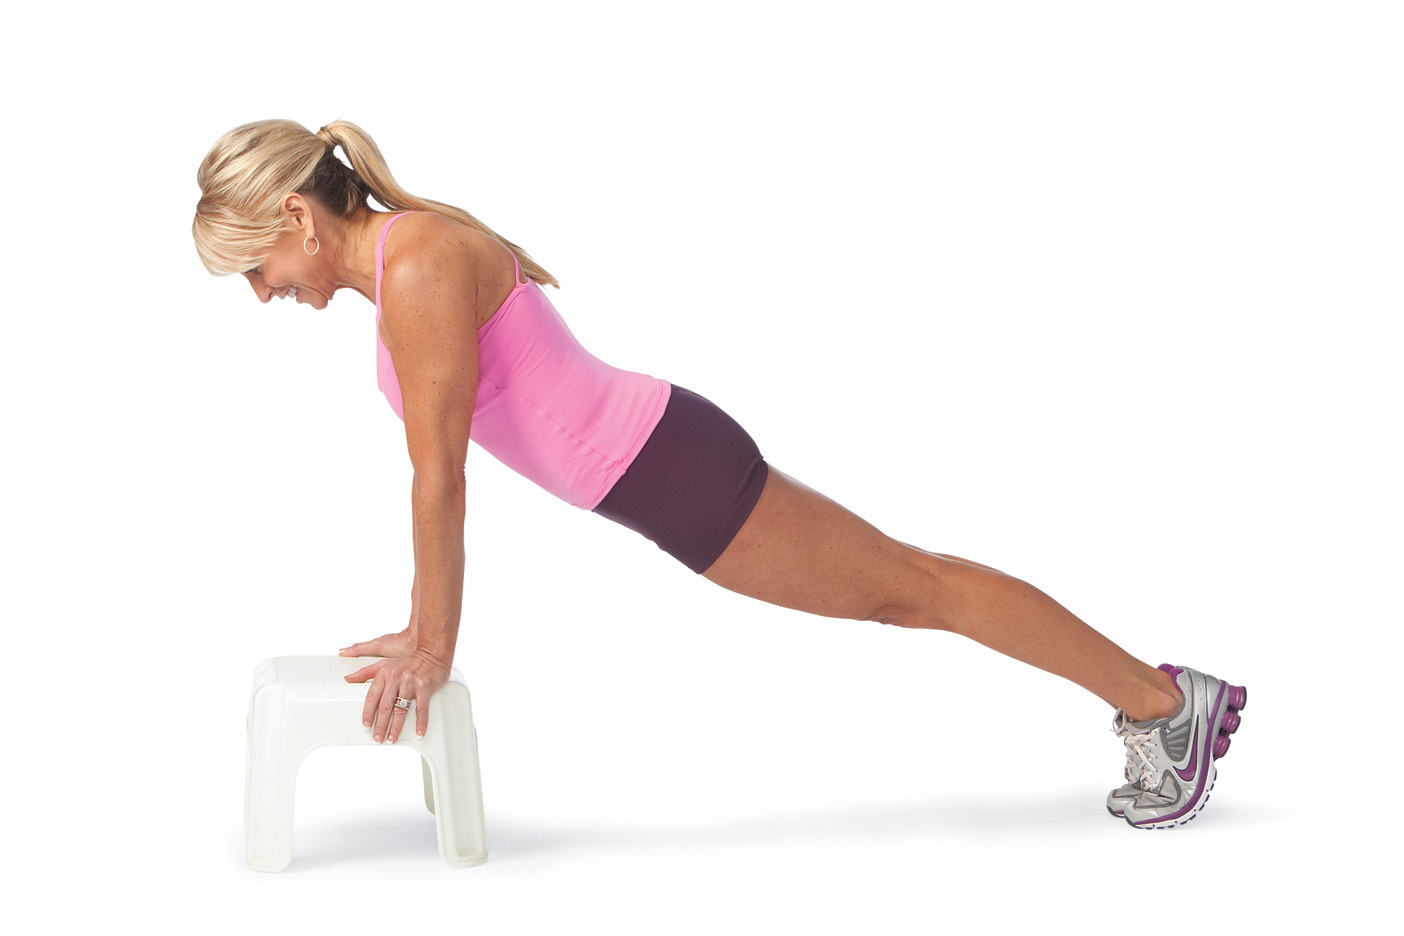 Pushup Variations: Incline & Decline